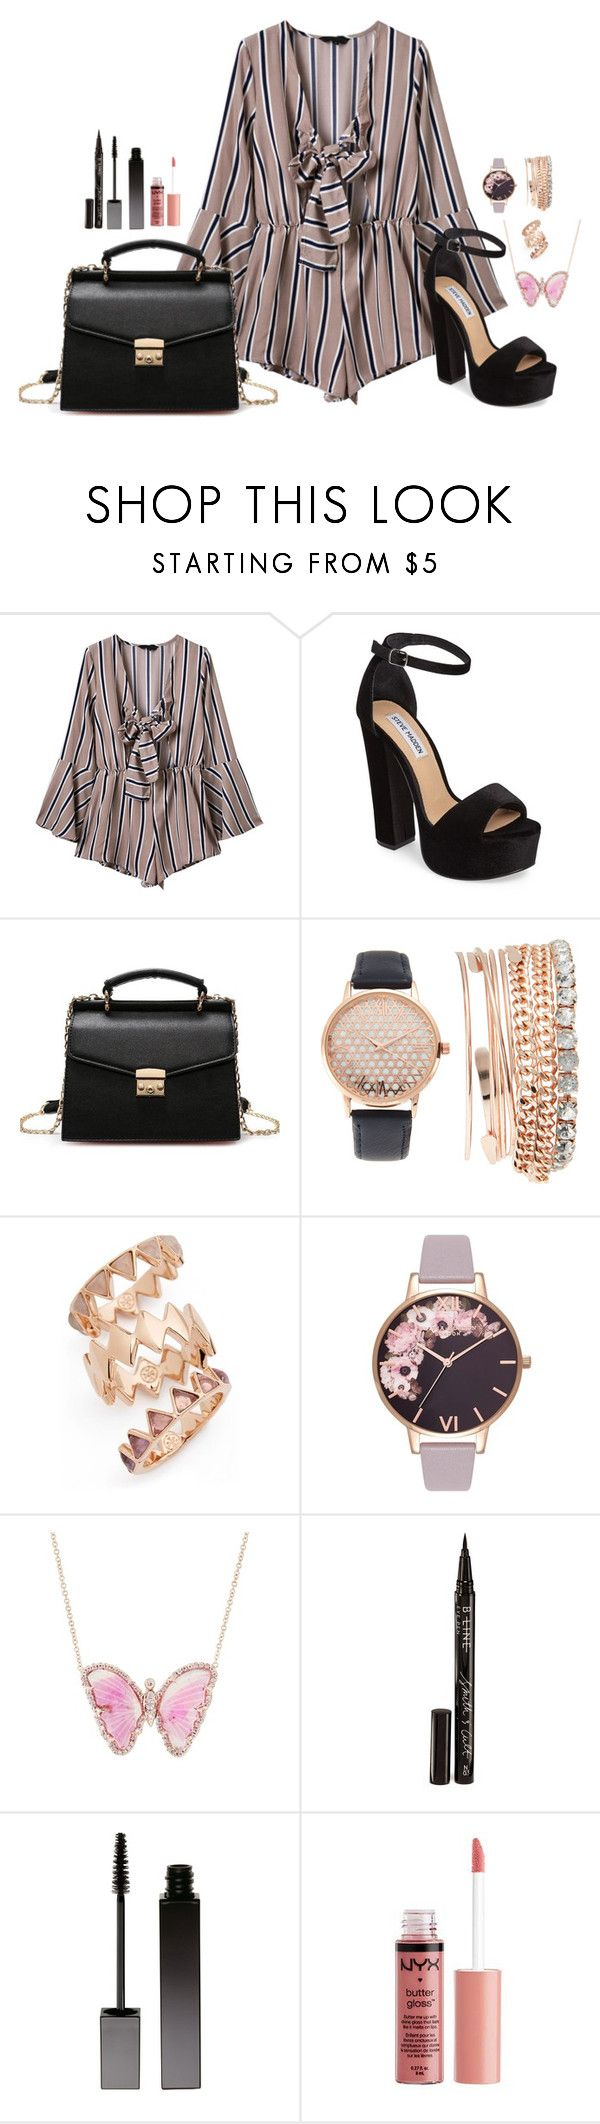 """""""Unbenannt #120"""" by himari18 ❤ liked on Polyvore featuring WithChic, Steve Madden, Jessica Carlyle, Tory Burch, Olivia Burton, Luna Skye, Smith & Cult, Serge Lutens and Charlotte Russe"""